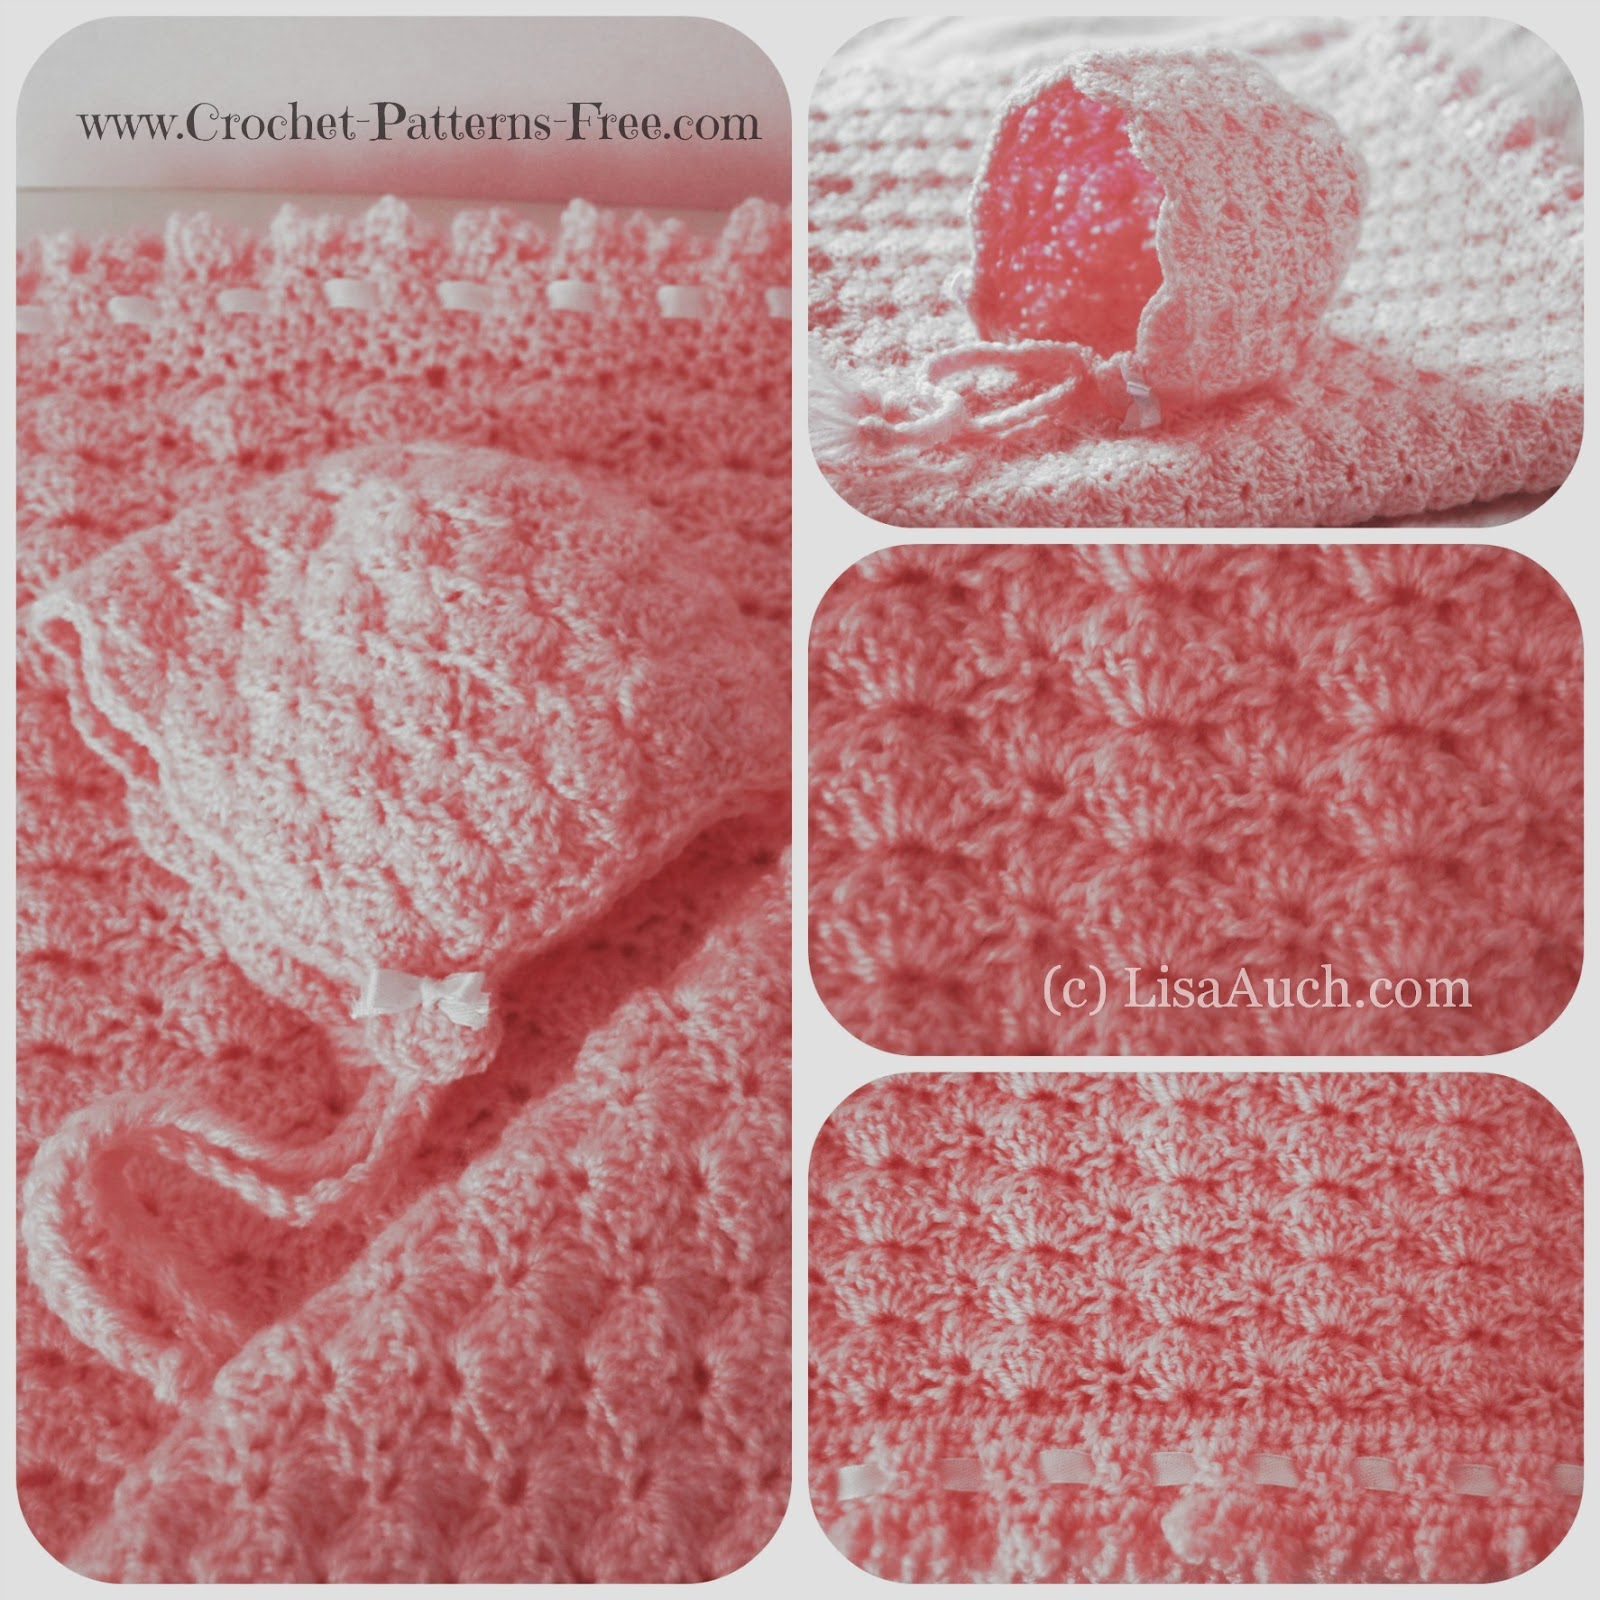 http://www.crochet-patterns-free.com/2014/04/free-crochet-patterns-vintage-baby.html